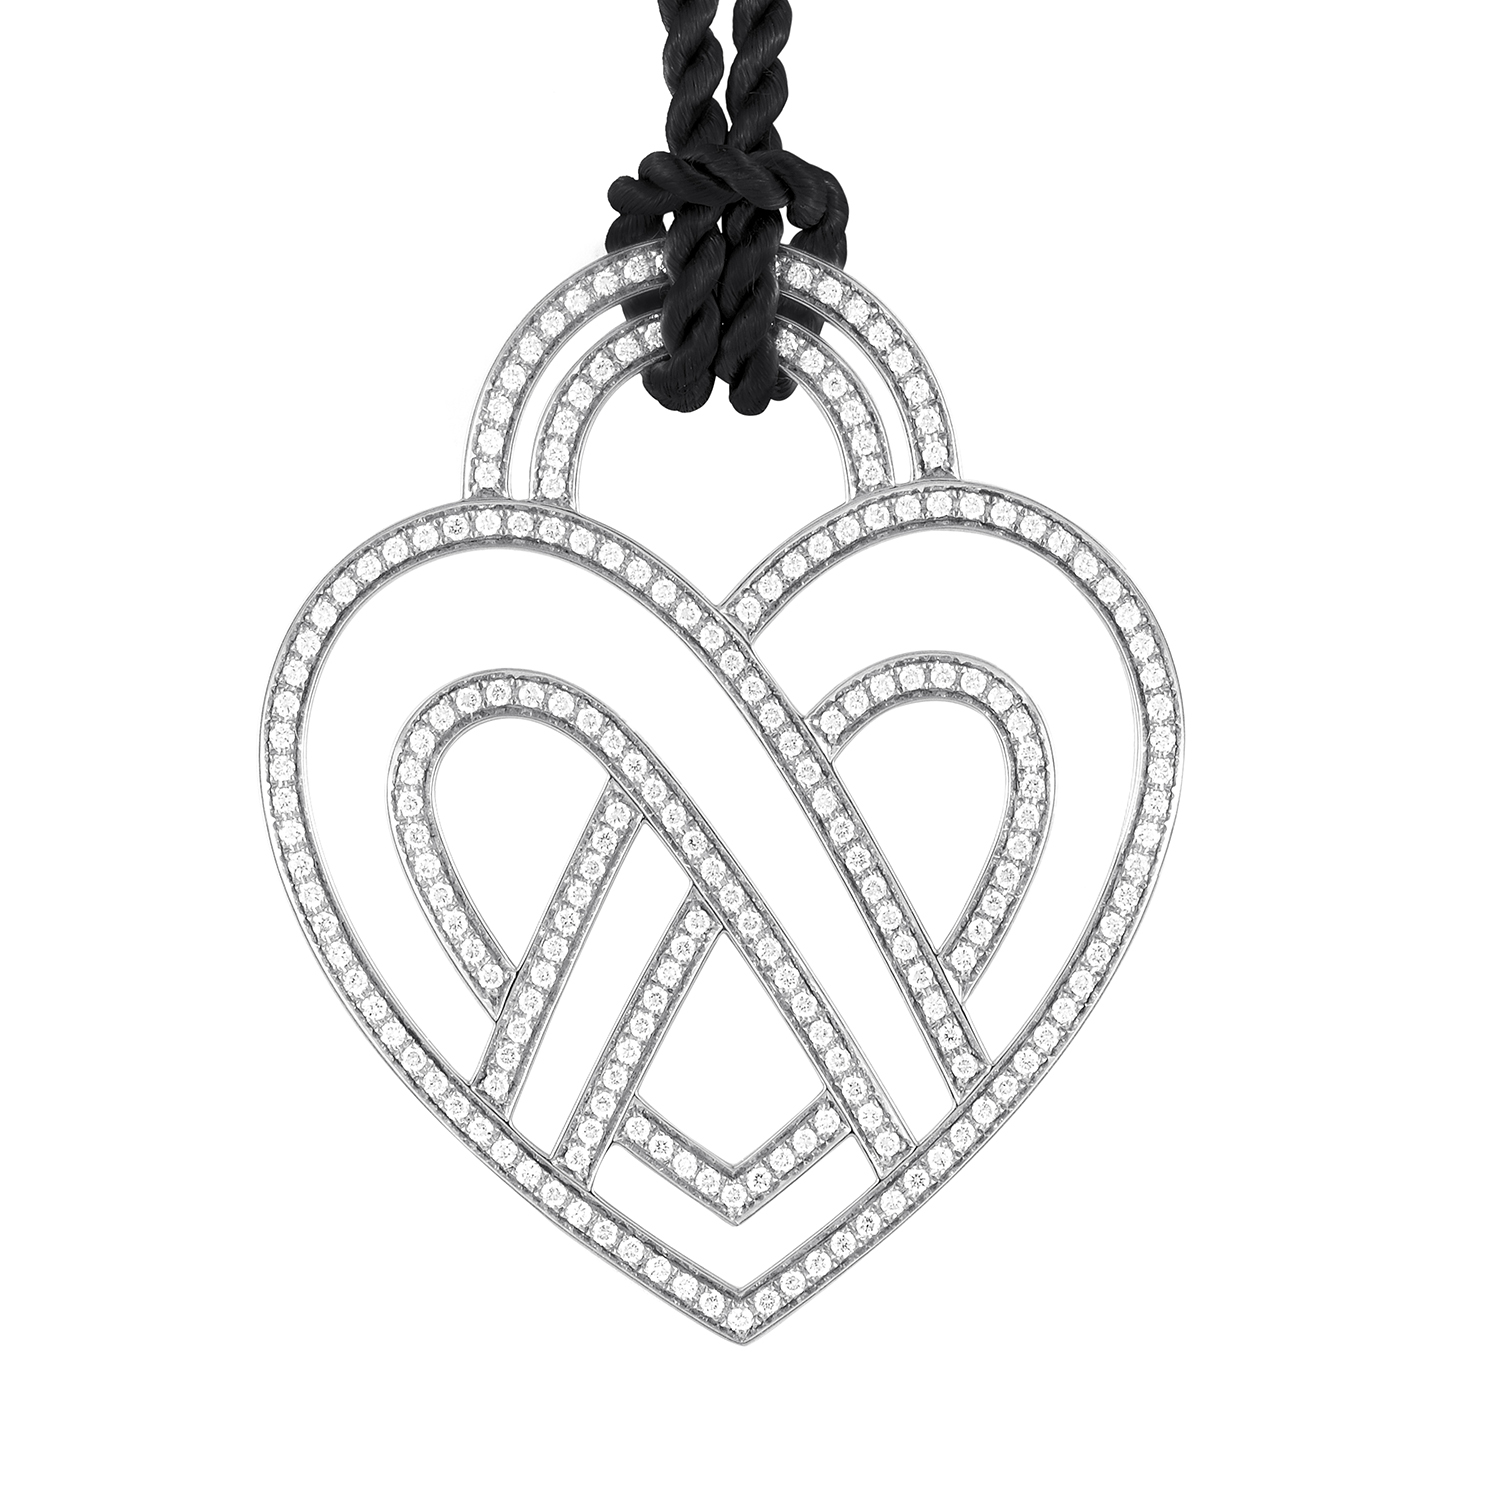 Large 18K White Gold Diamond Heart Pendant & Cord Necklace PPC8952